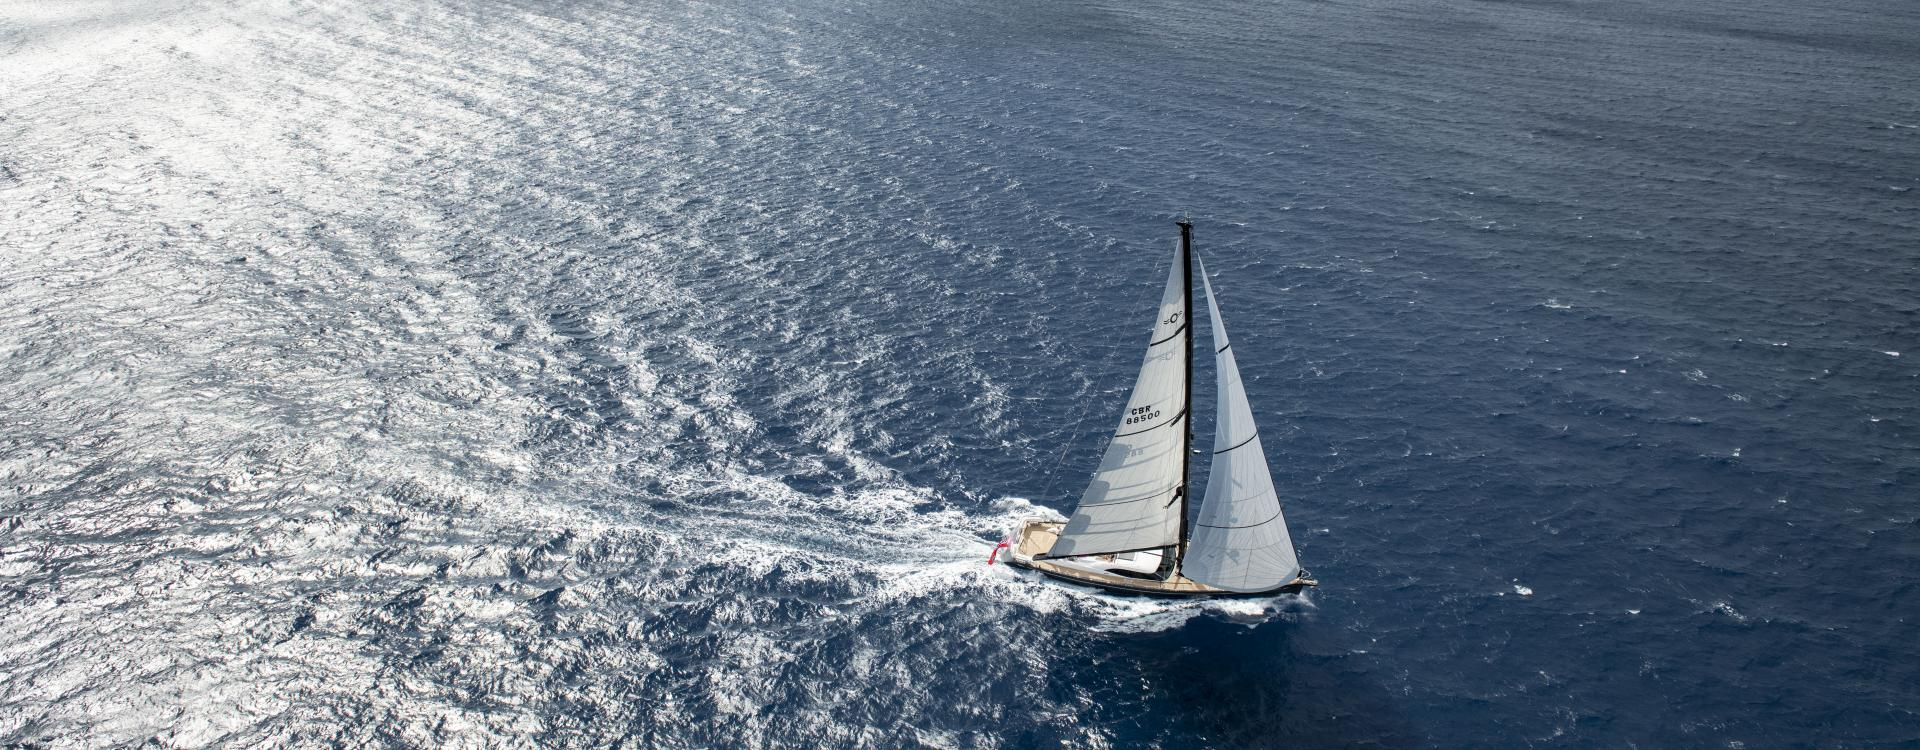 Oyster Yachts Luxury Sailboat Design